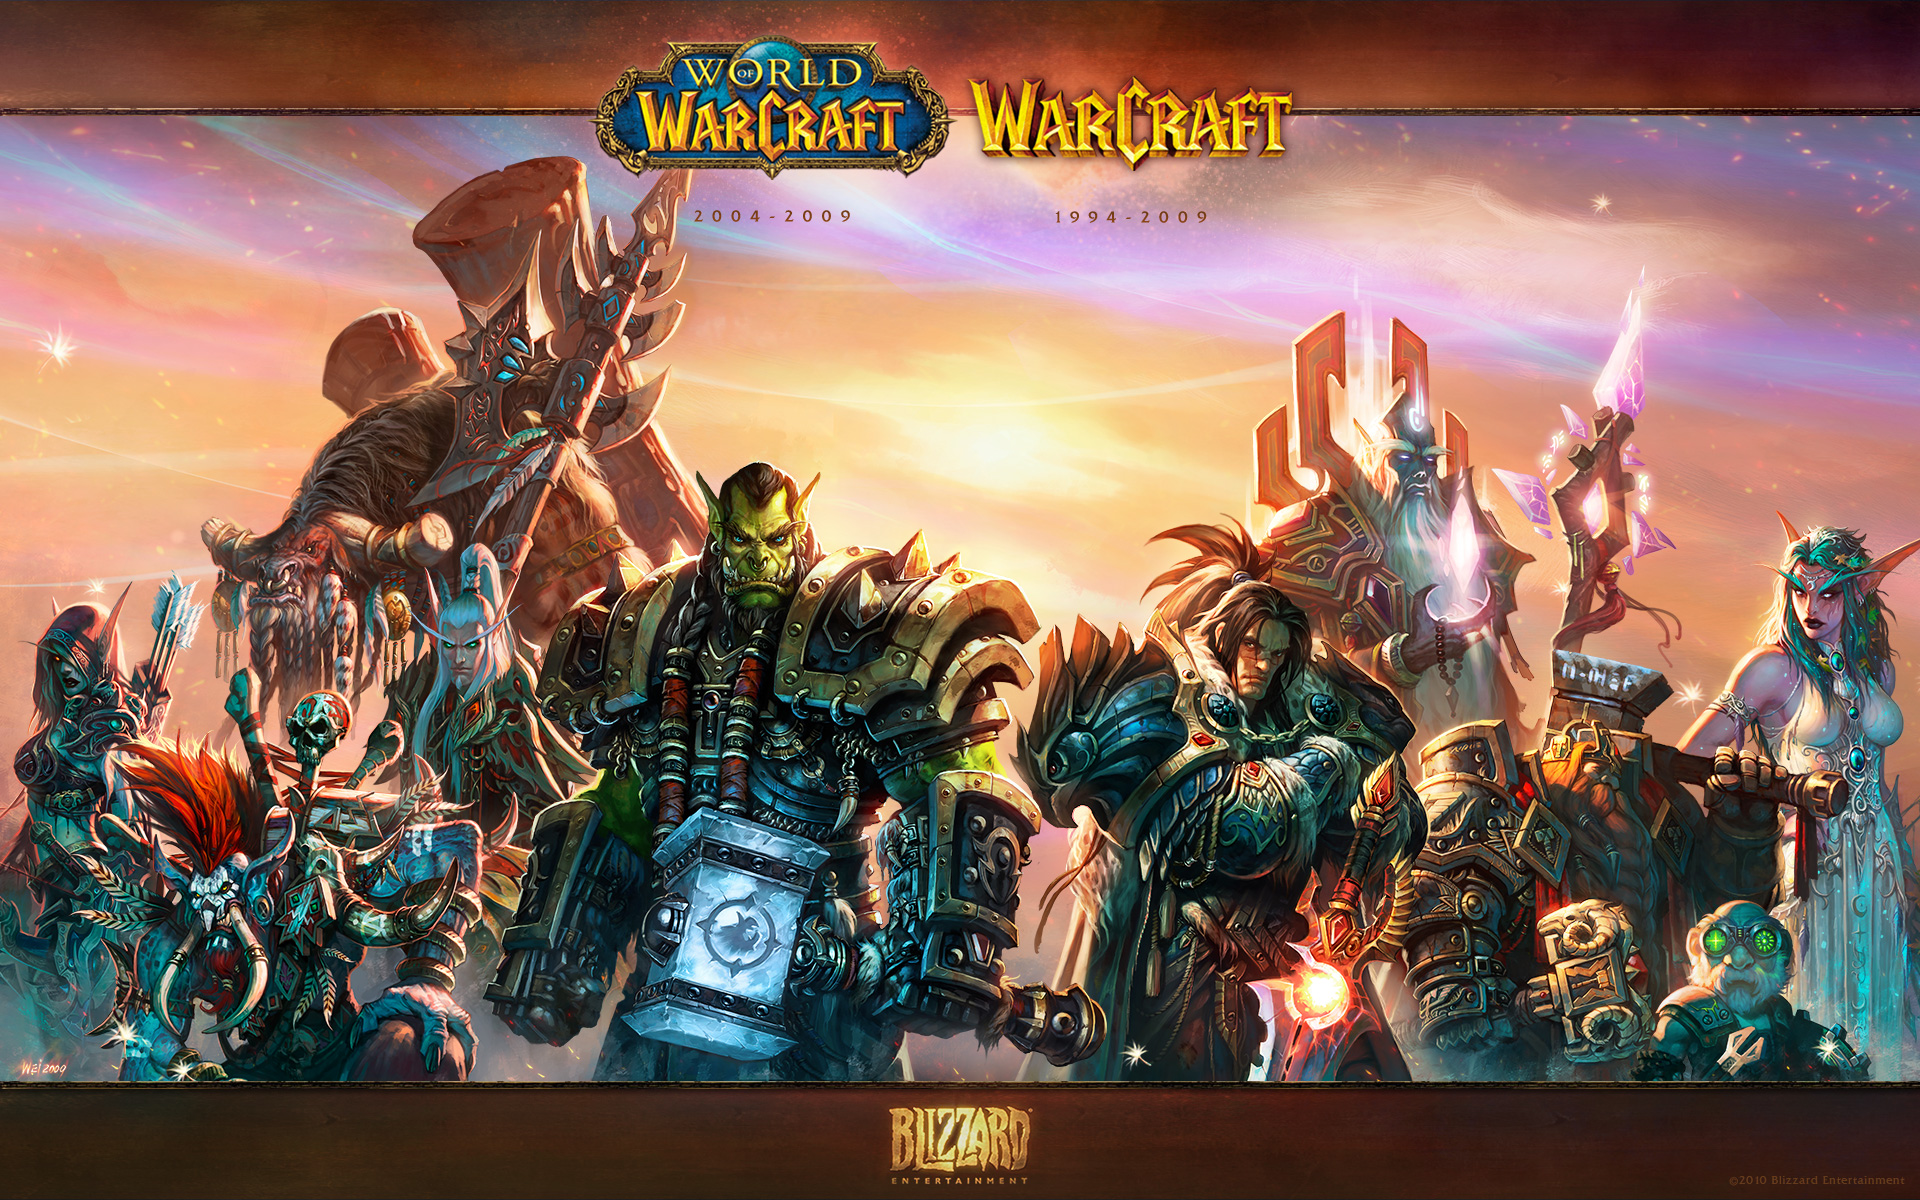 World Of Warcraft Wallpaper Download 1920p World Of Warcraft 1920x1200